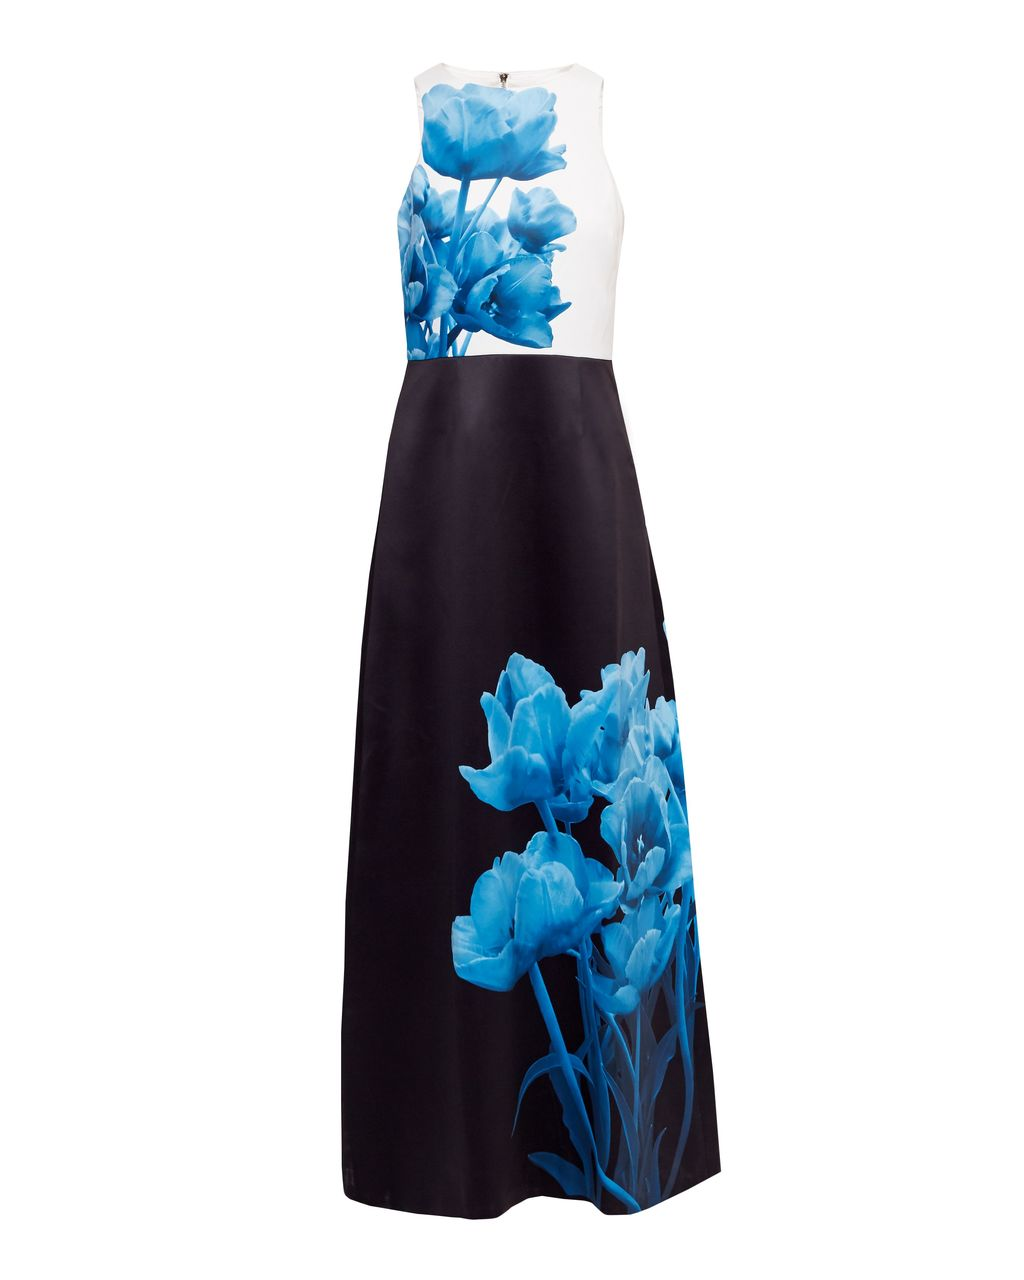 Niriah Blue Beauty Maxi Dress, Black - style: ballgown; sleeve style: sleeveless; secondary colour: diva blue; predominant colour: black; occasions: evening, occasion; length: floor length; fit: fitted at waist & bust; fibres: polyester/polyamide - 100%; neckline: crew; sleeve length: sleeveless; texture group: structured shiny - satin/tafetta/silk etc.; pattern type: fabric; pattern: patterned/print; season: s/s 2016